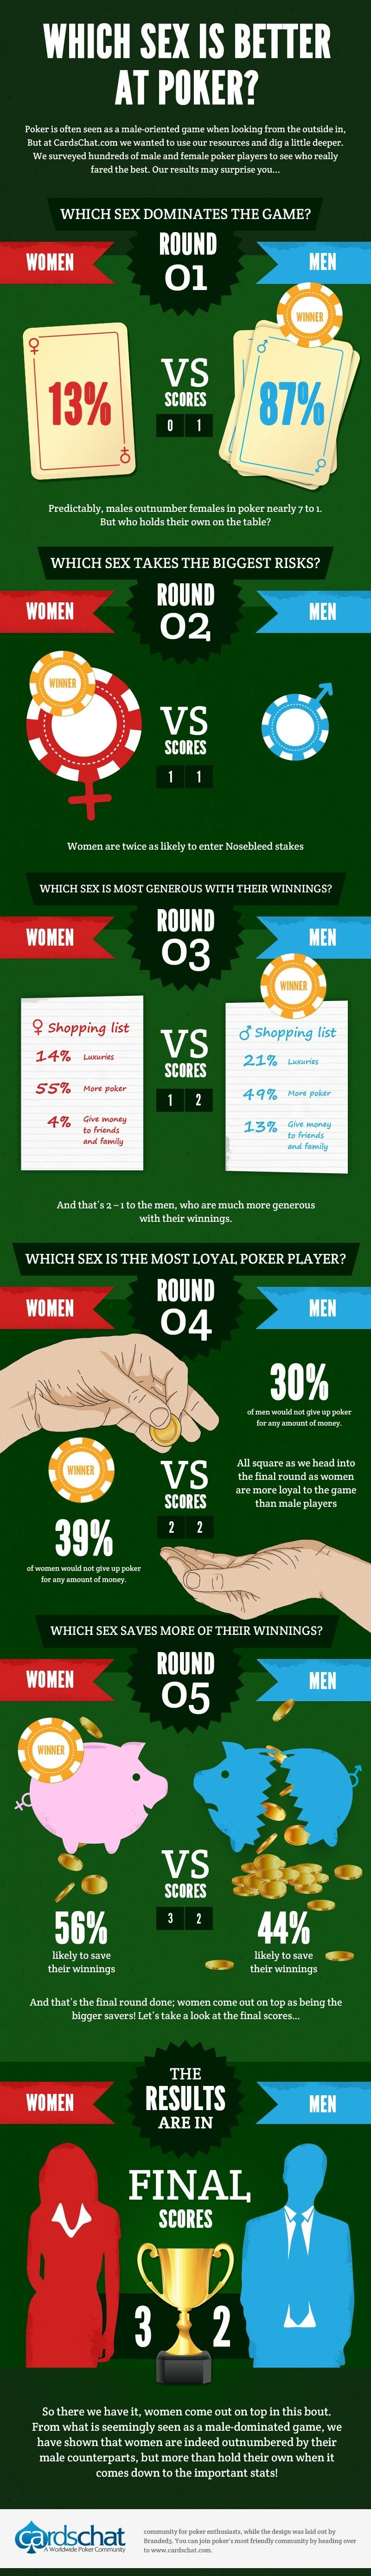 Which Sex is Better At Poker #infographic